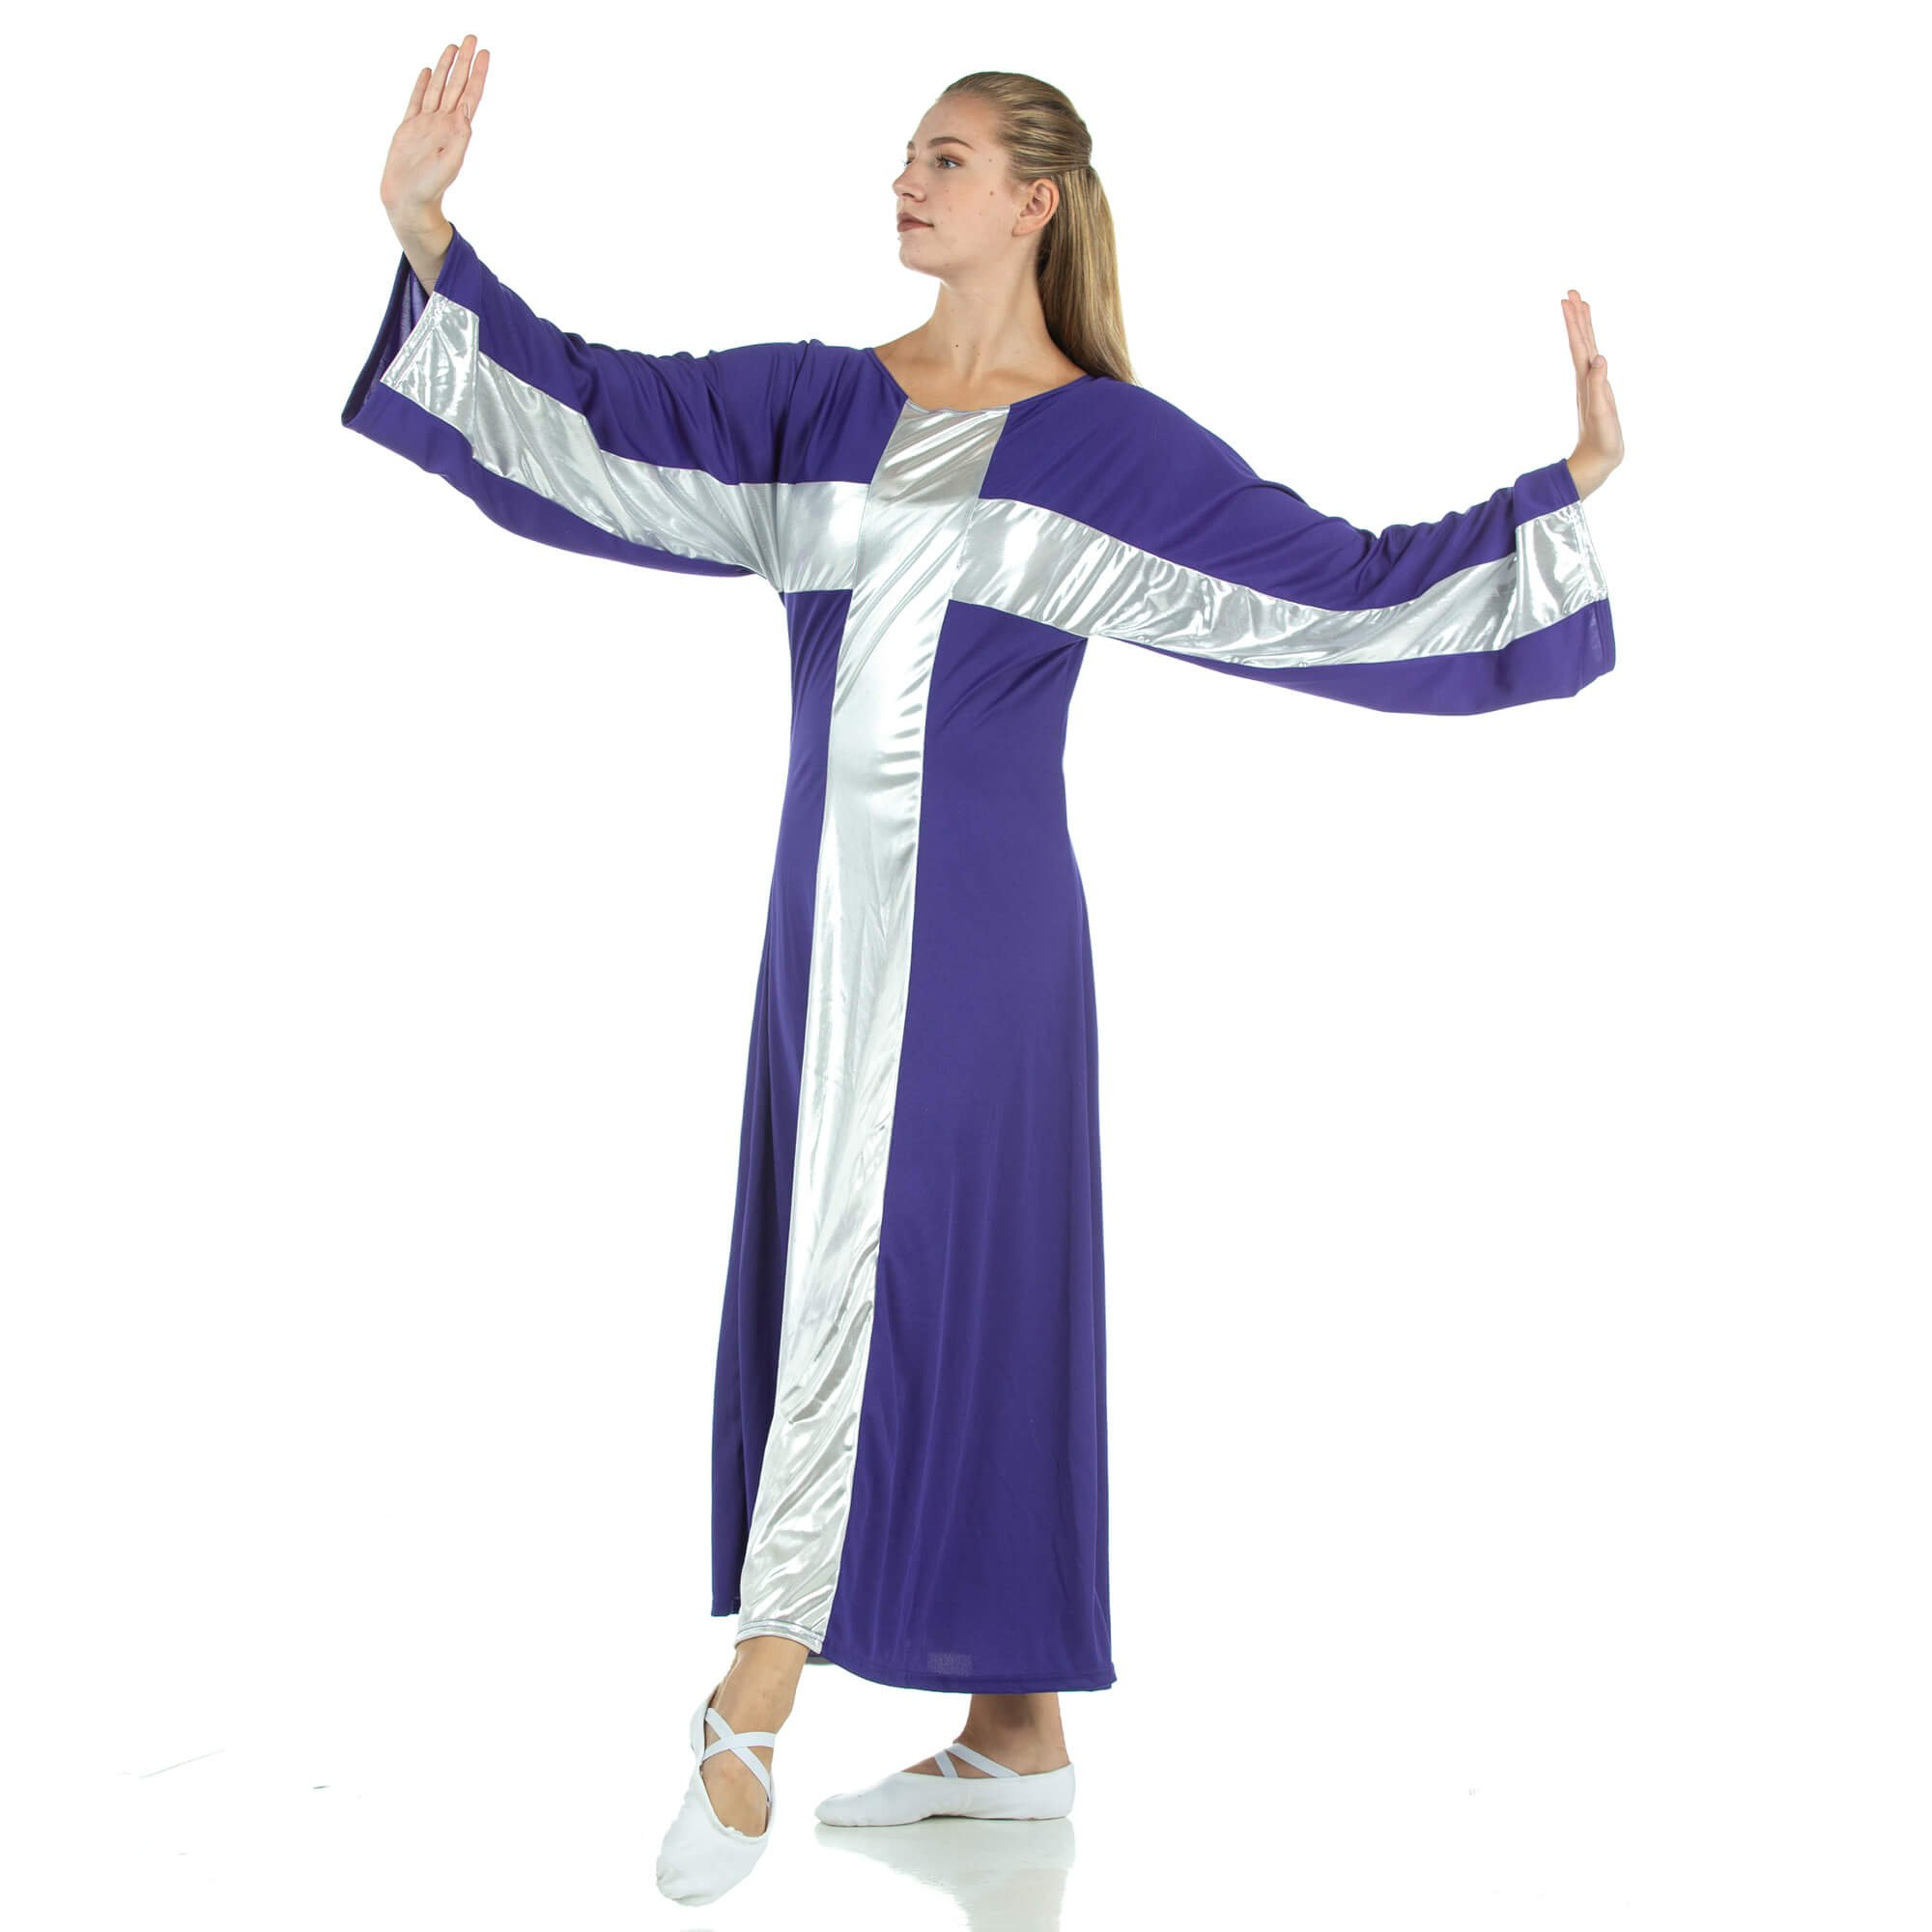 Danzcue Cross Robe Worship Dance Dress